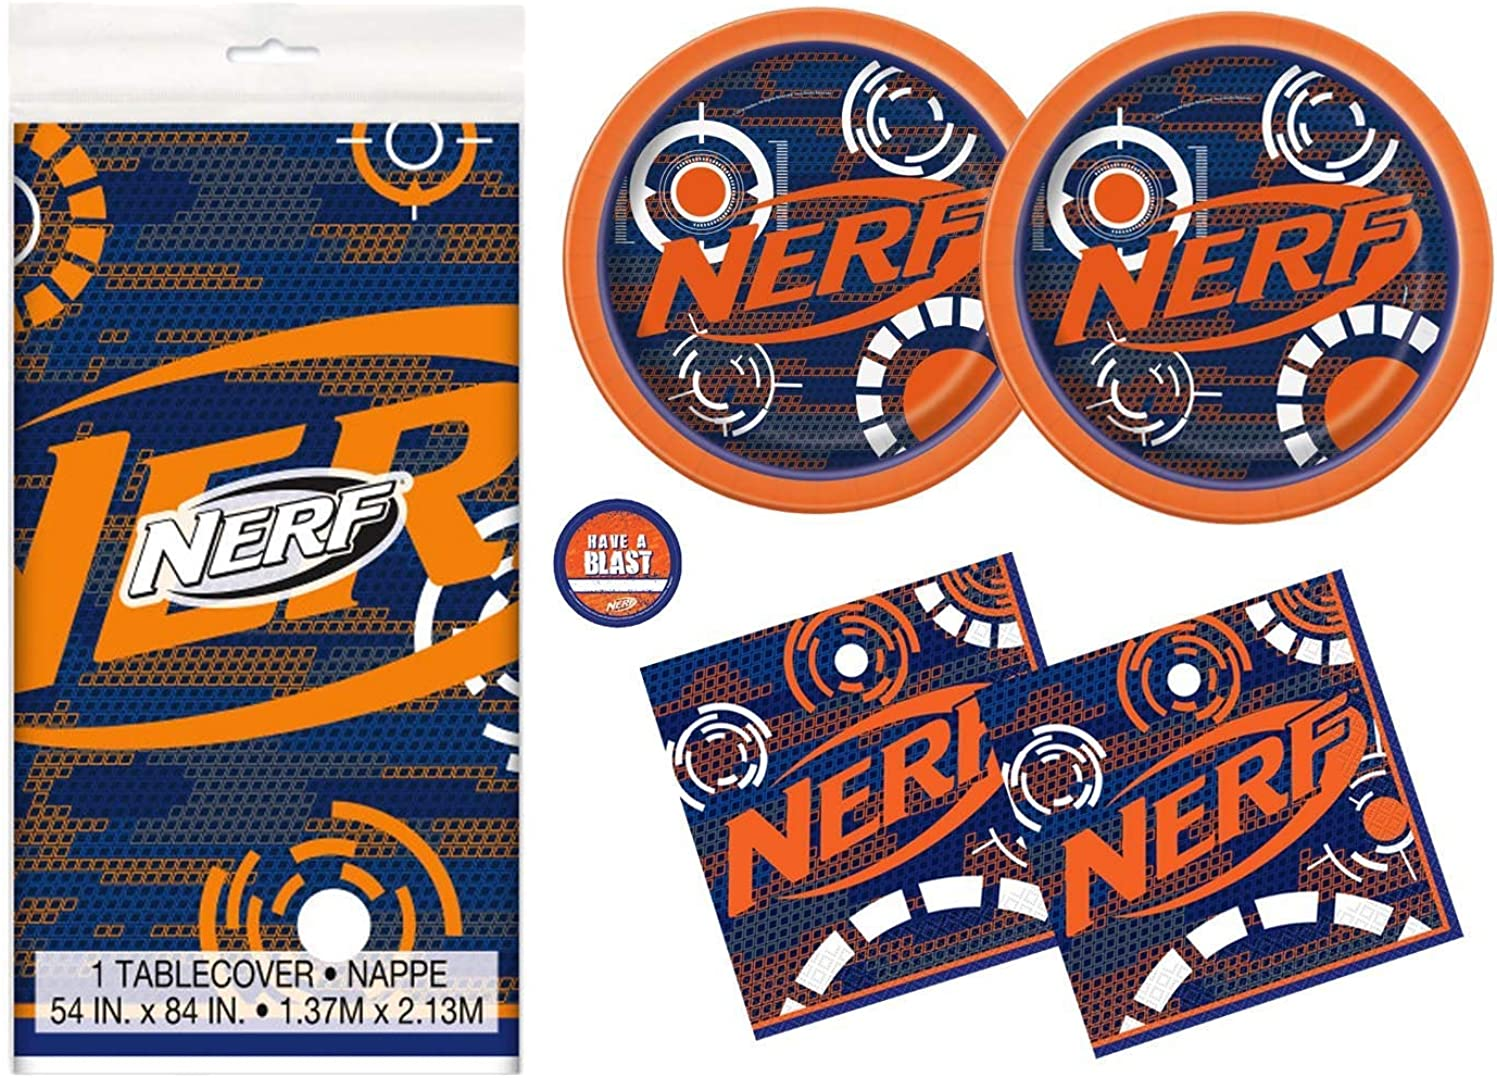 Nerf Theme Party Supplies Pack - Serves 16 - Tablecover, Plates, Napkins and Sticker